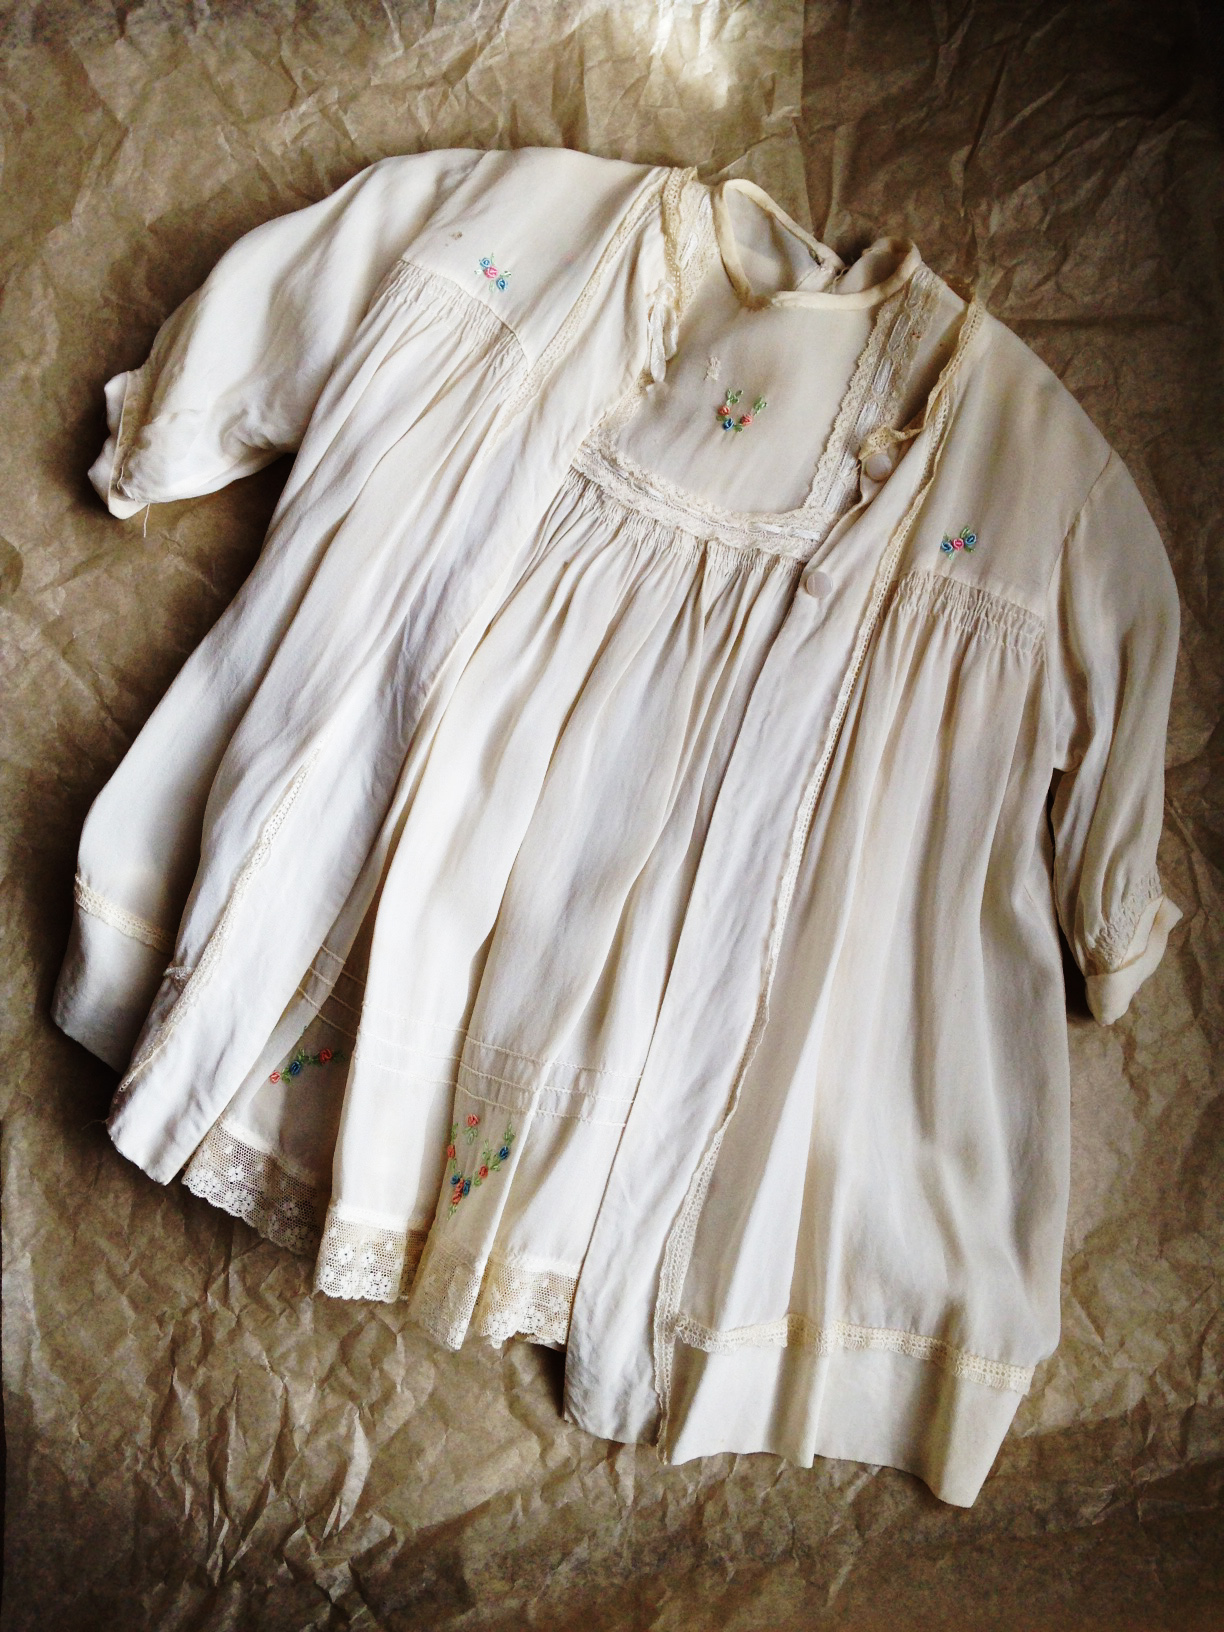 My christening 'gown' (as they were known then) - aged silk, hand smocking & rosebud trimmed. Definitely 'vintage'.